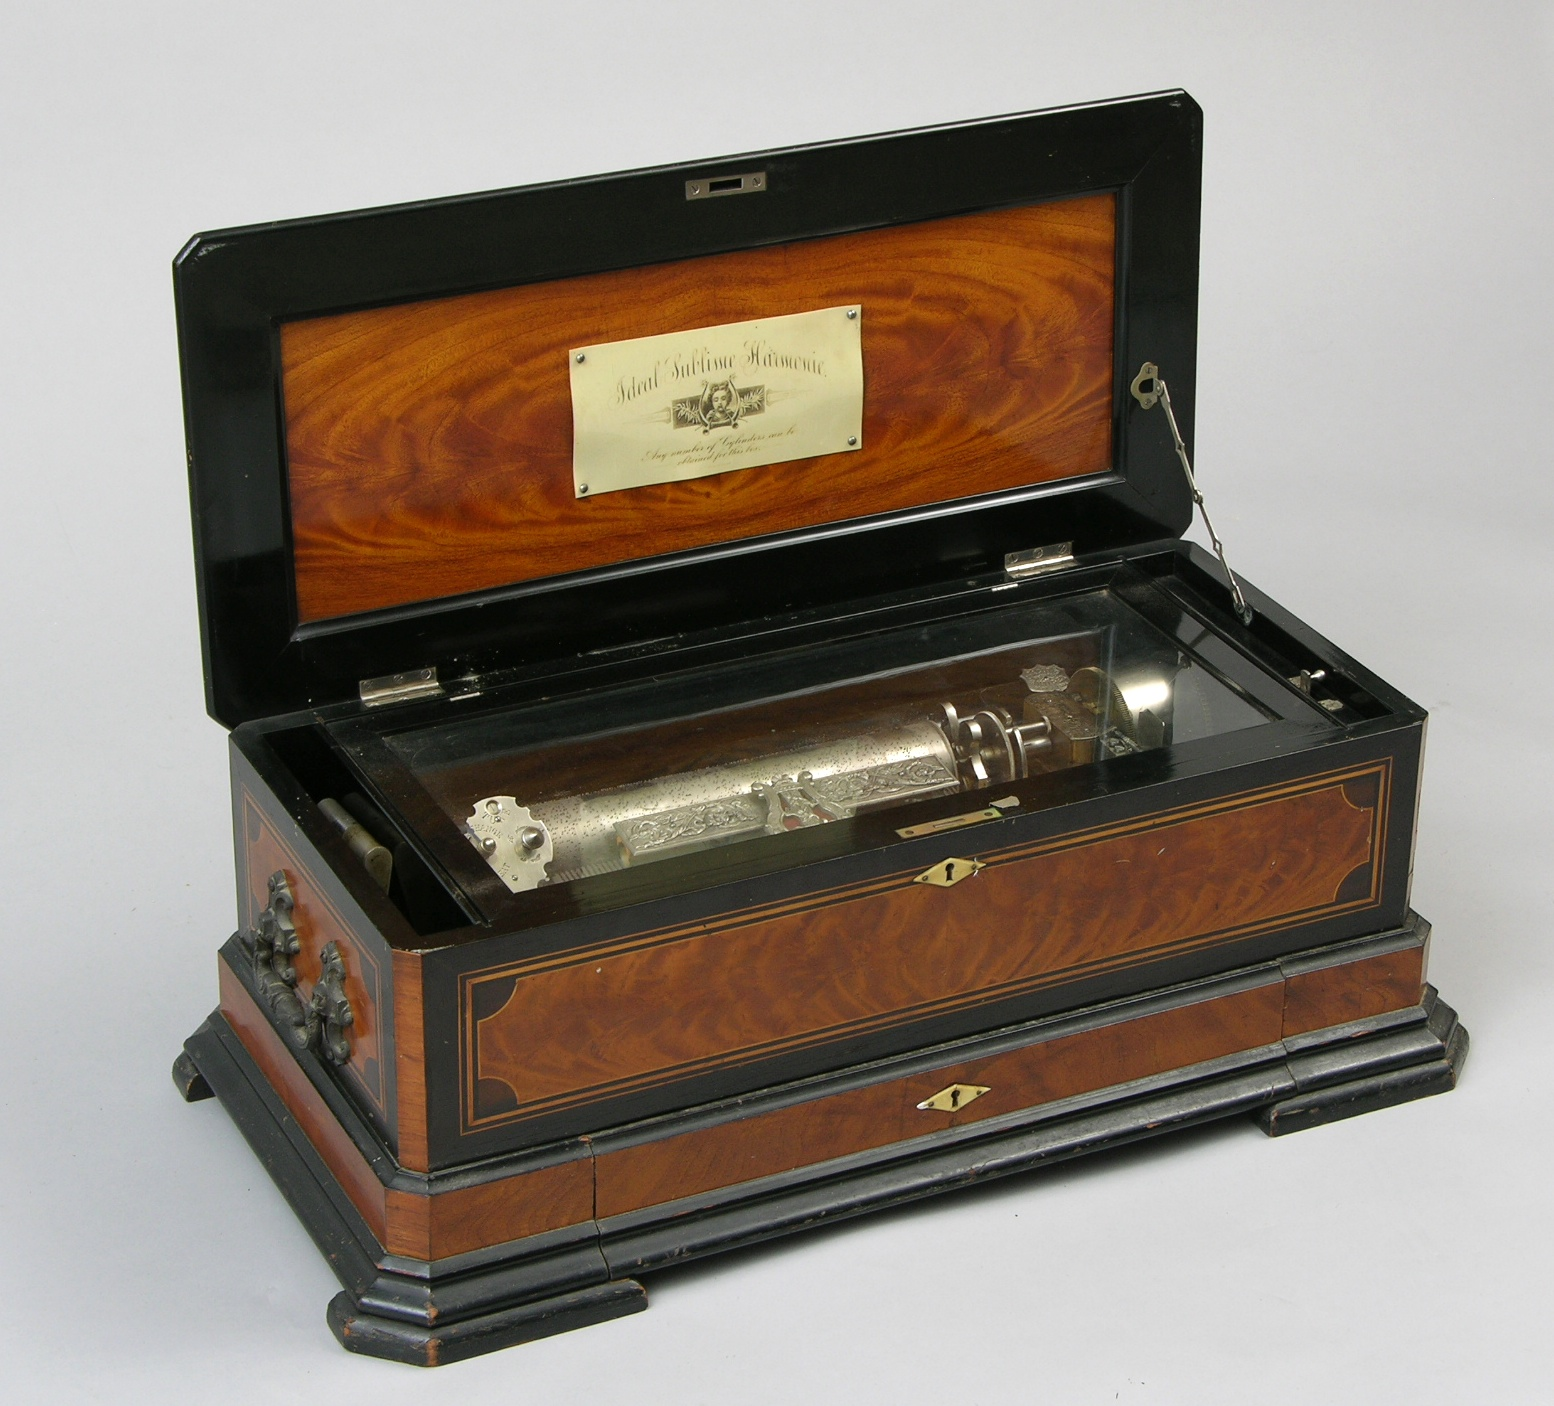 An Antique Quot Concerta Quot Ideal Sublime Cylinder Musical Box